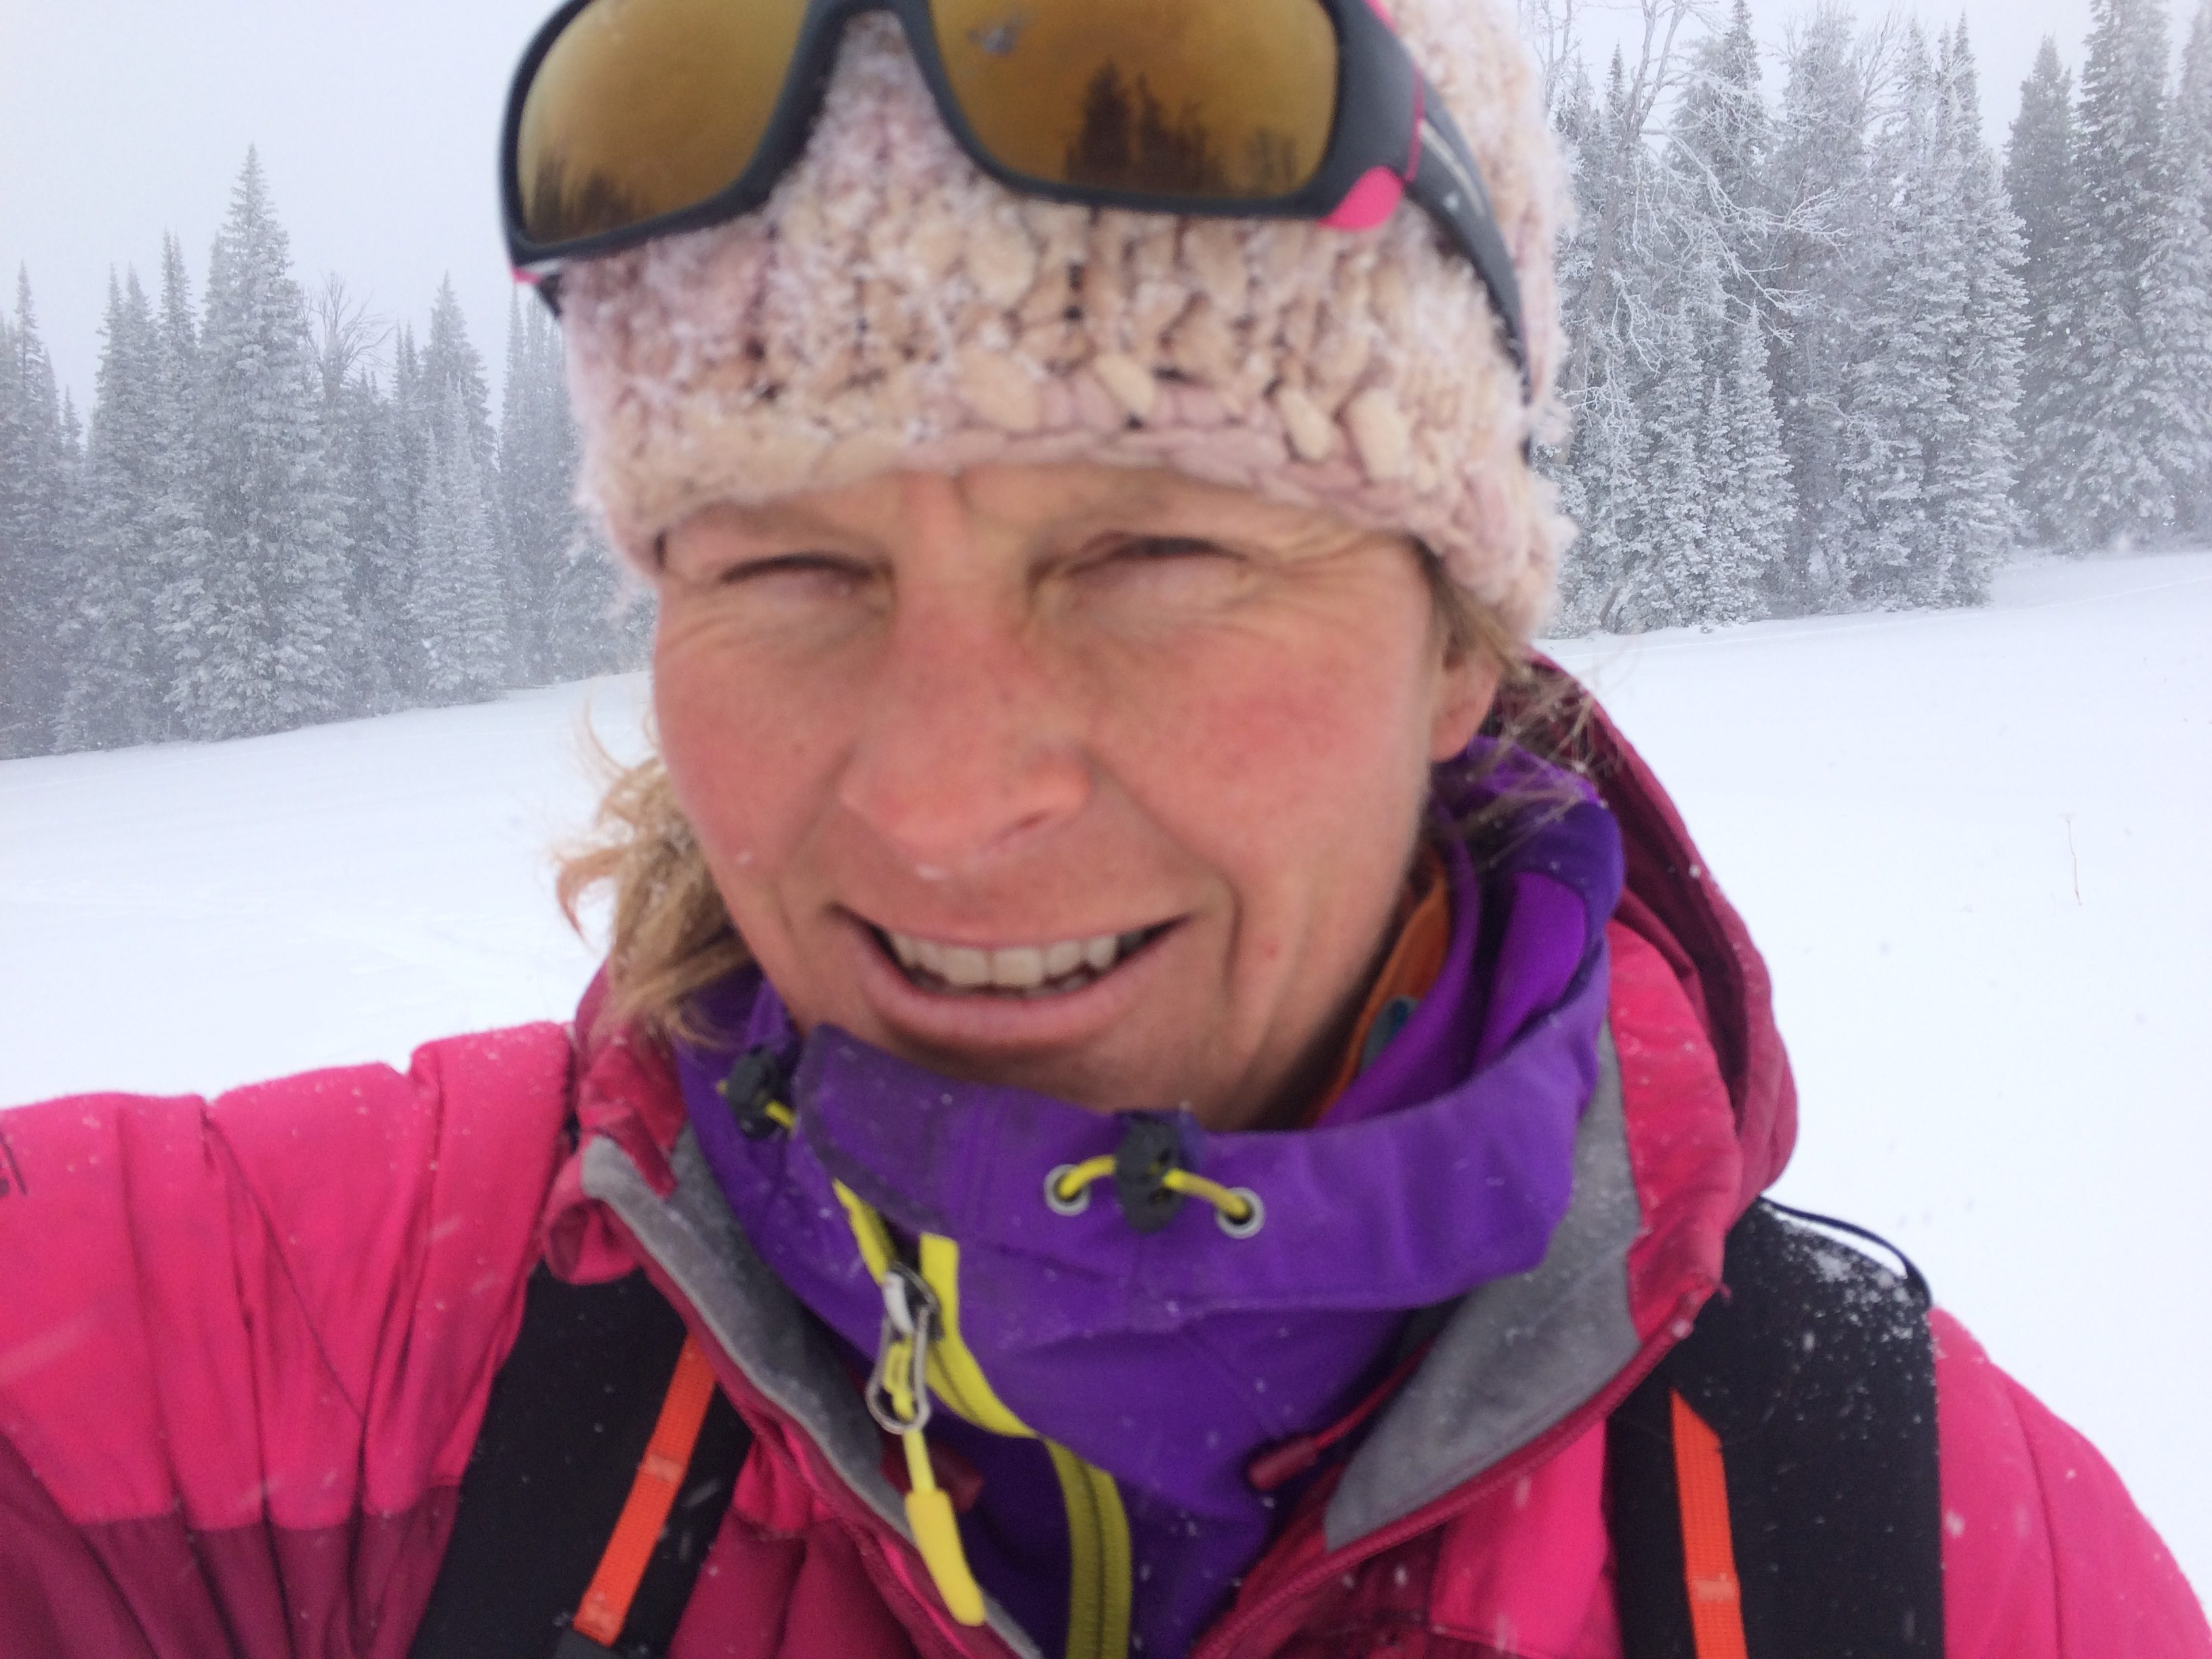 Hello, Snow!, Karen Bockel, Chicks Climbing and Skiing co-owner, IFMGA Mountain Guide, selfie in a snowstorm ©Karen Bockel